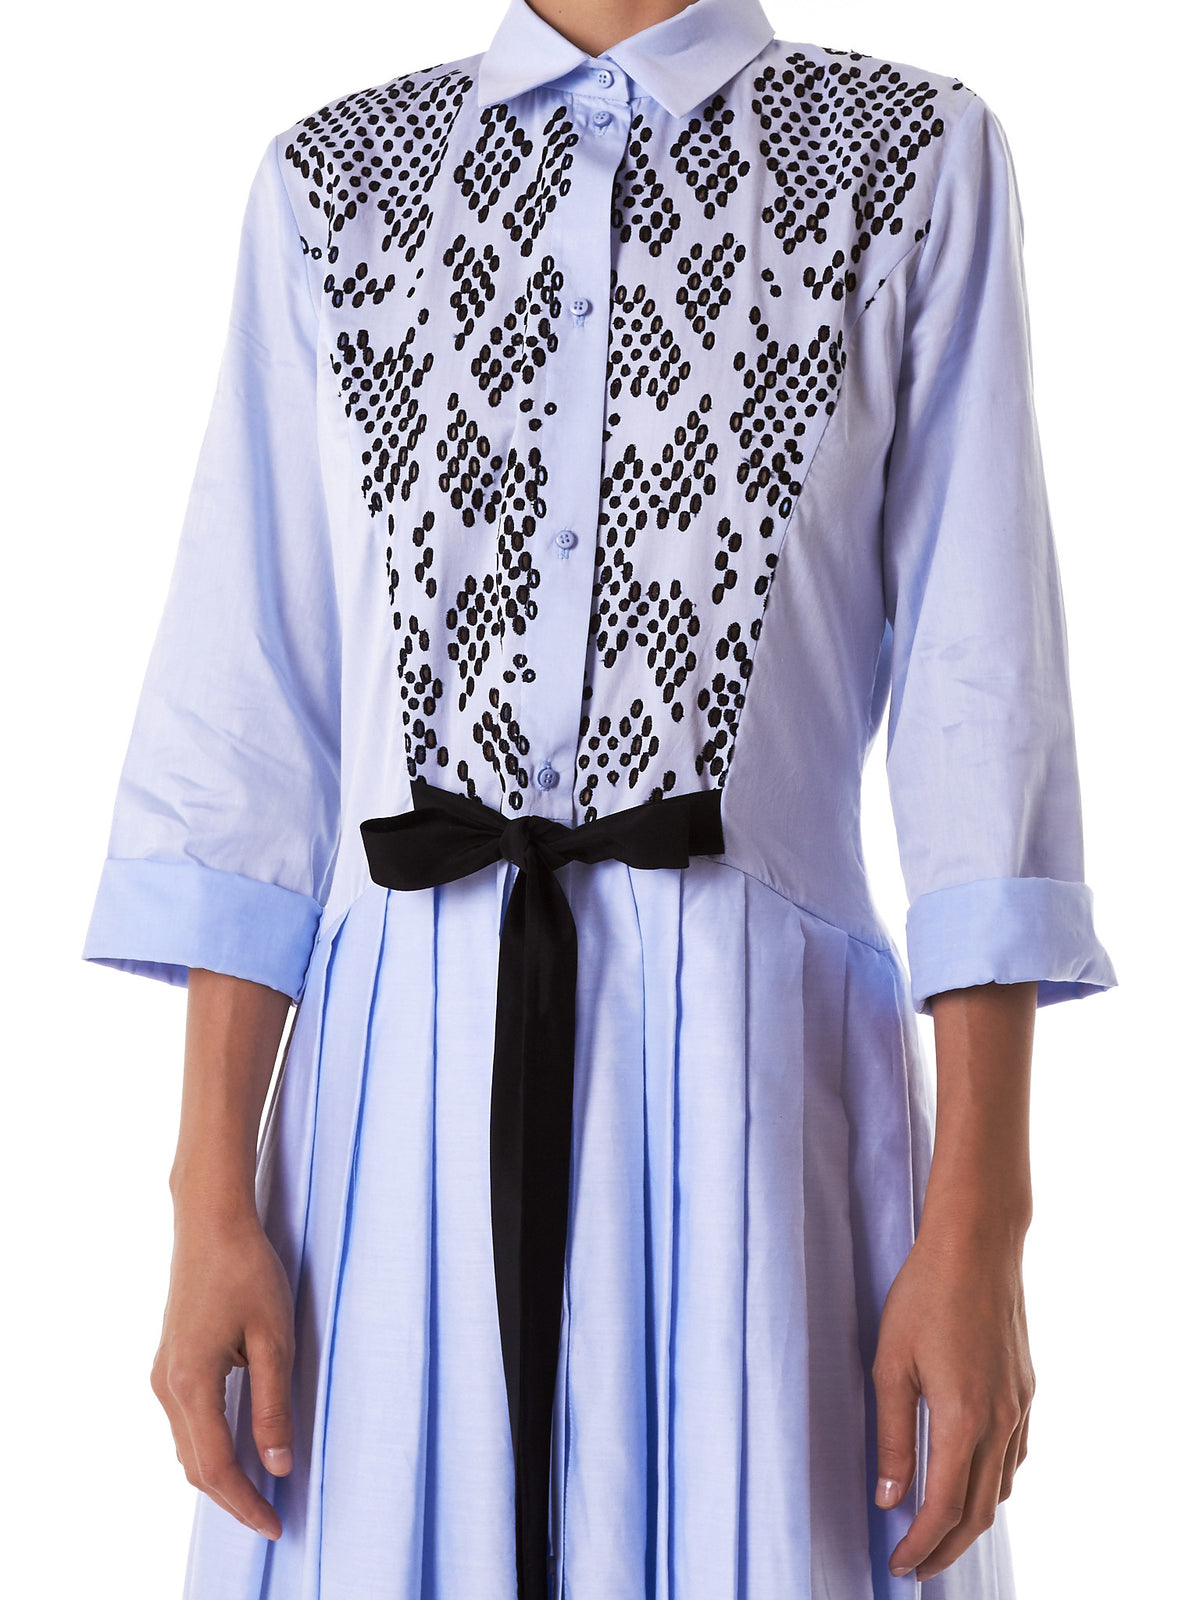 Perforated Button-Down Dress (D18-ICEBLUE-BLACK)